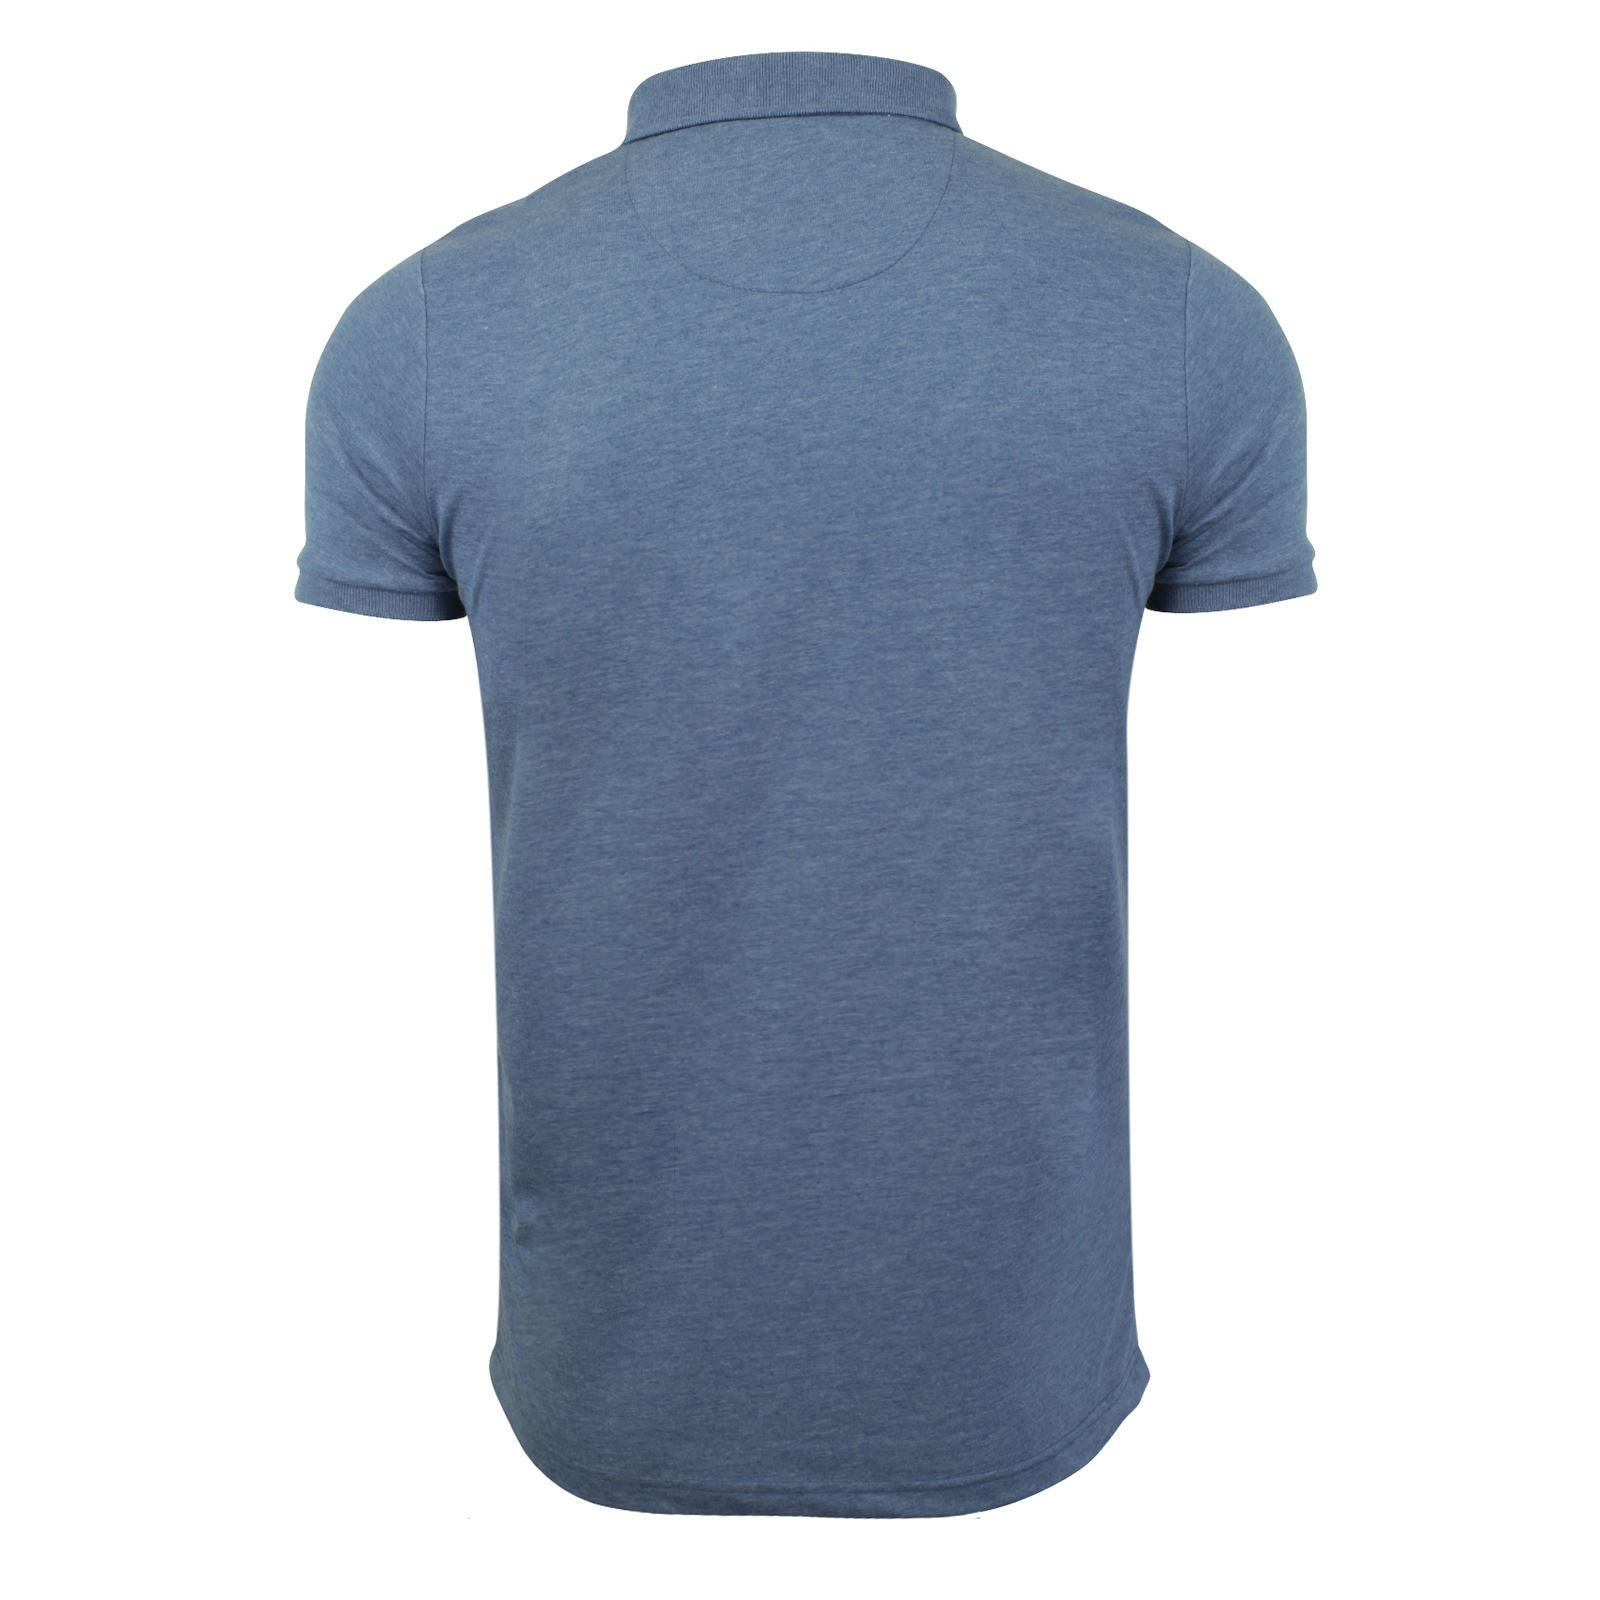 Brave-Soul-Julius-Mens-Polo-T-Shirt-Cotton-Collared-Short-Sleeve-Casual-Top miniature 9